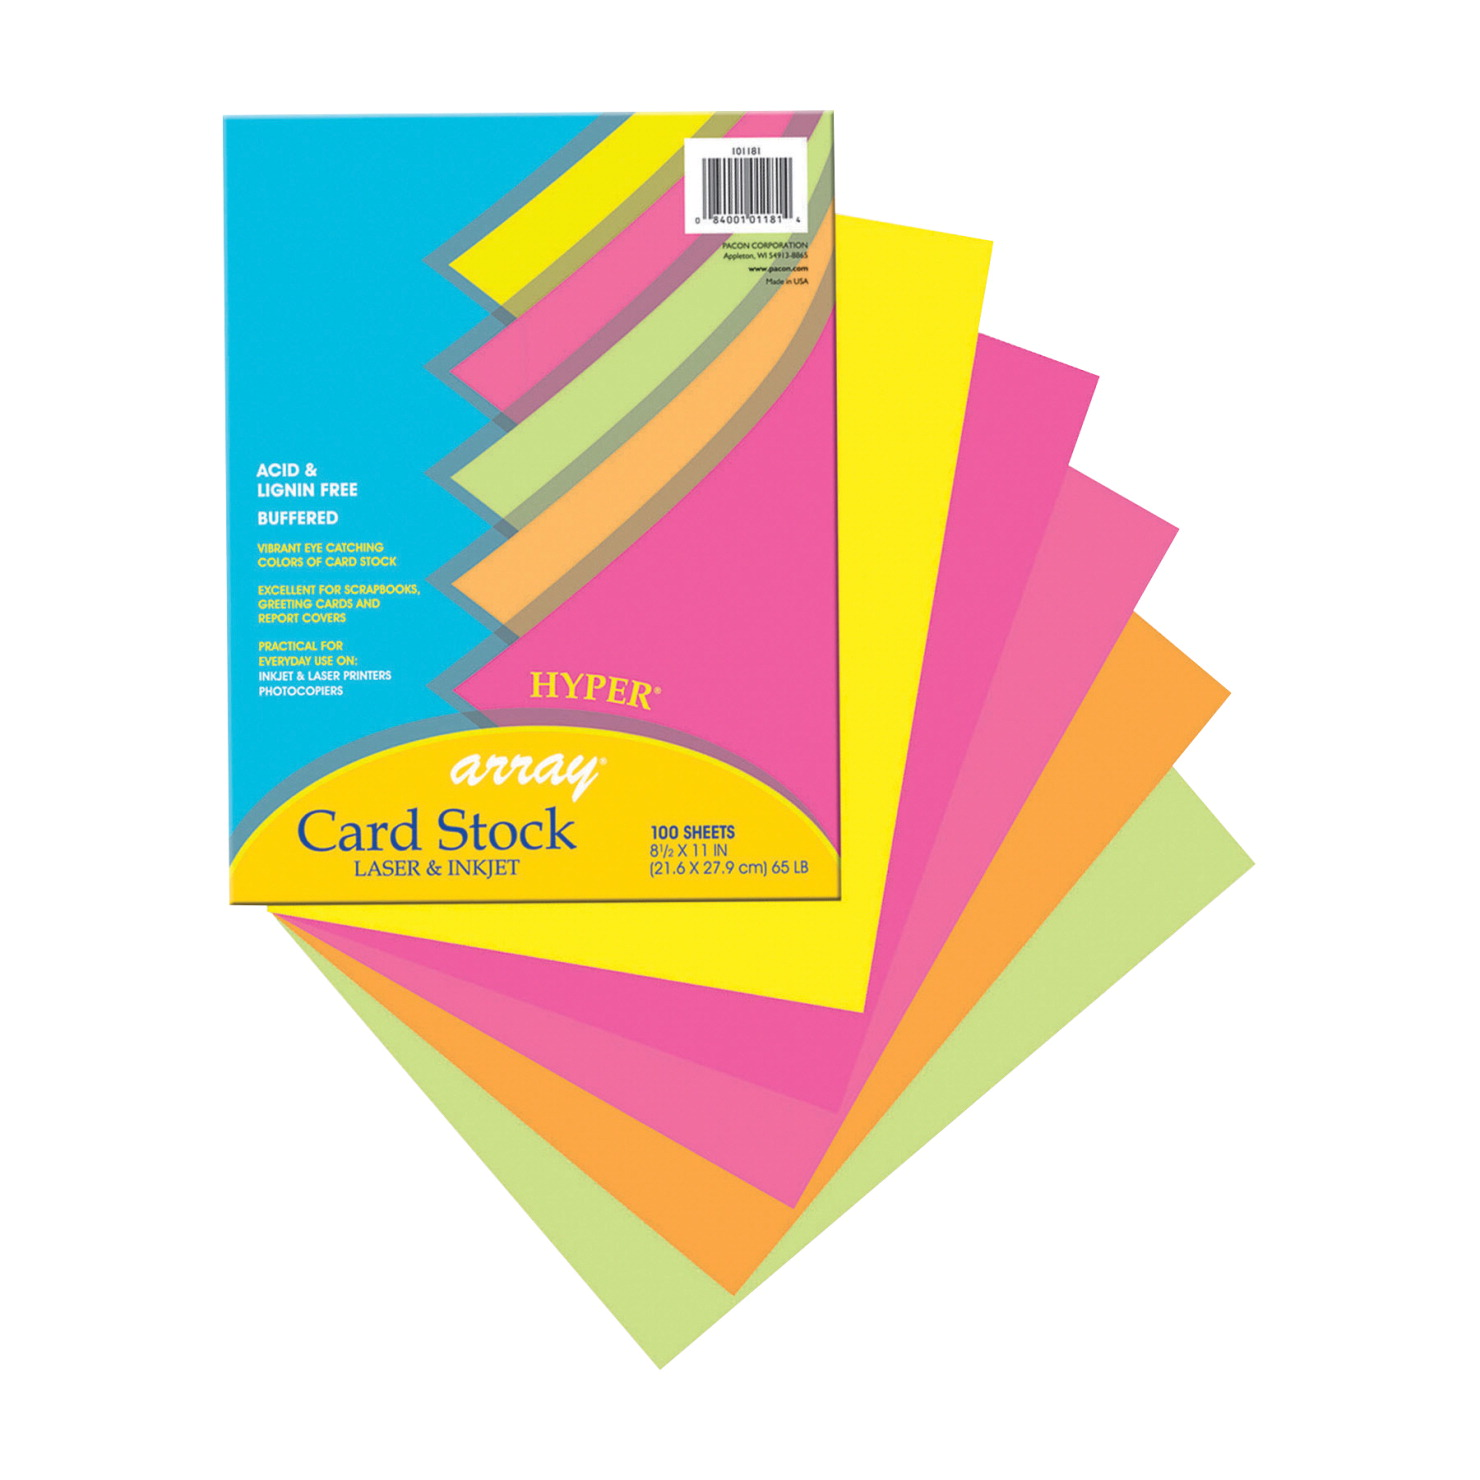 Array Card Stock Paper, 8-1/2 x 11 Inch, Assorted Hyper Colors, Pack of 100